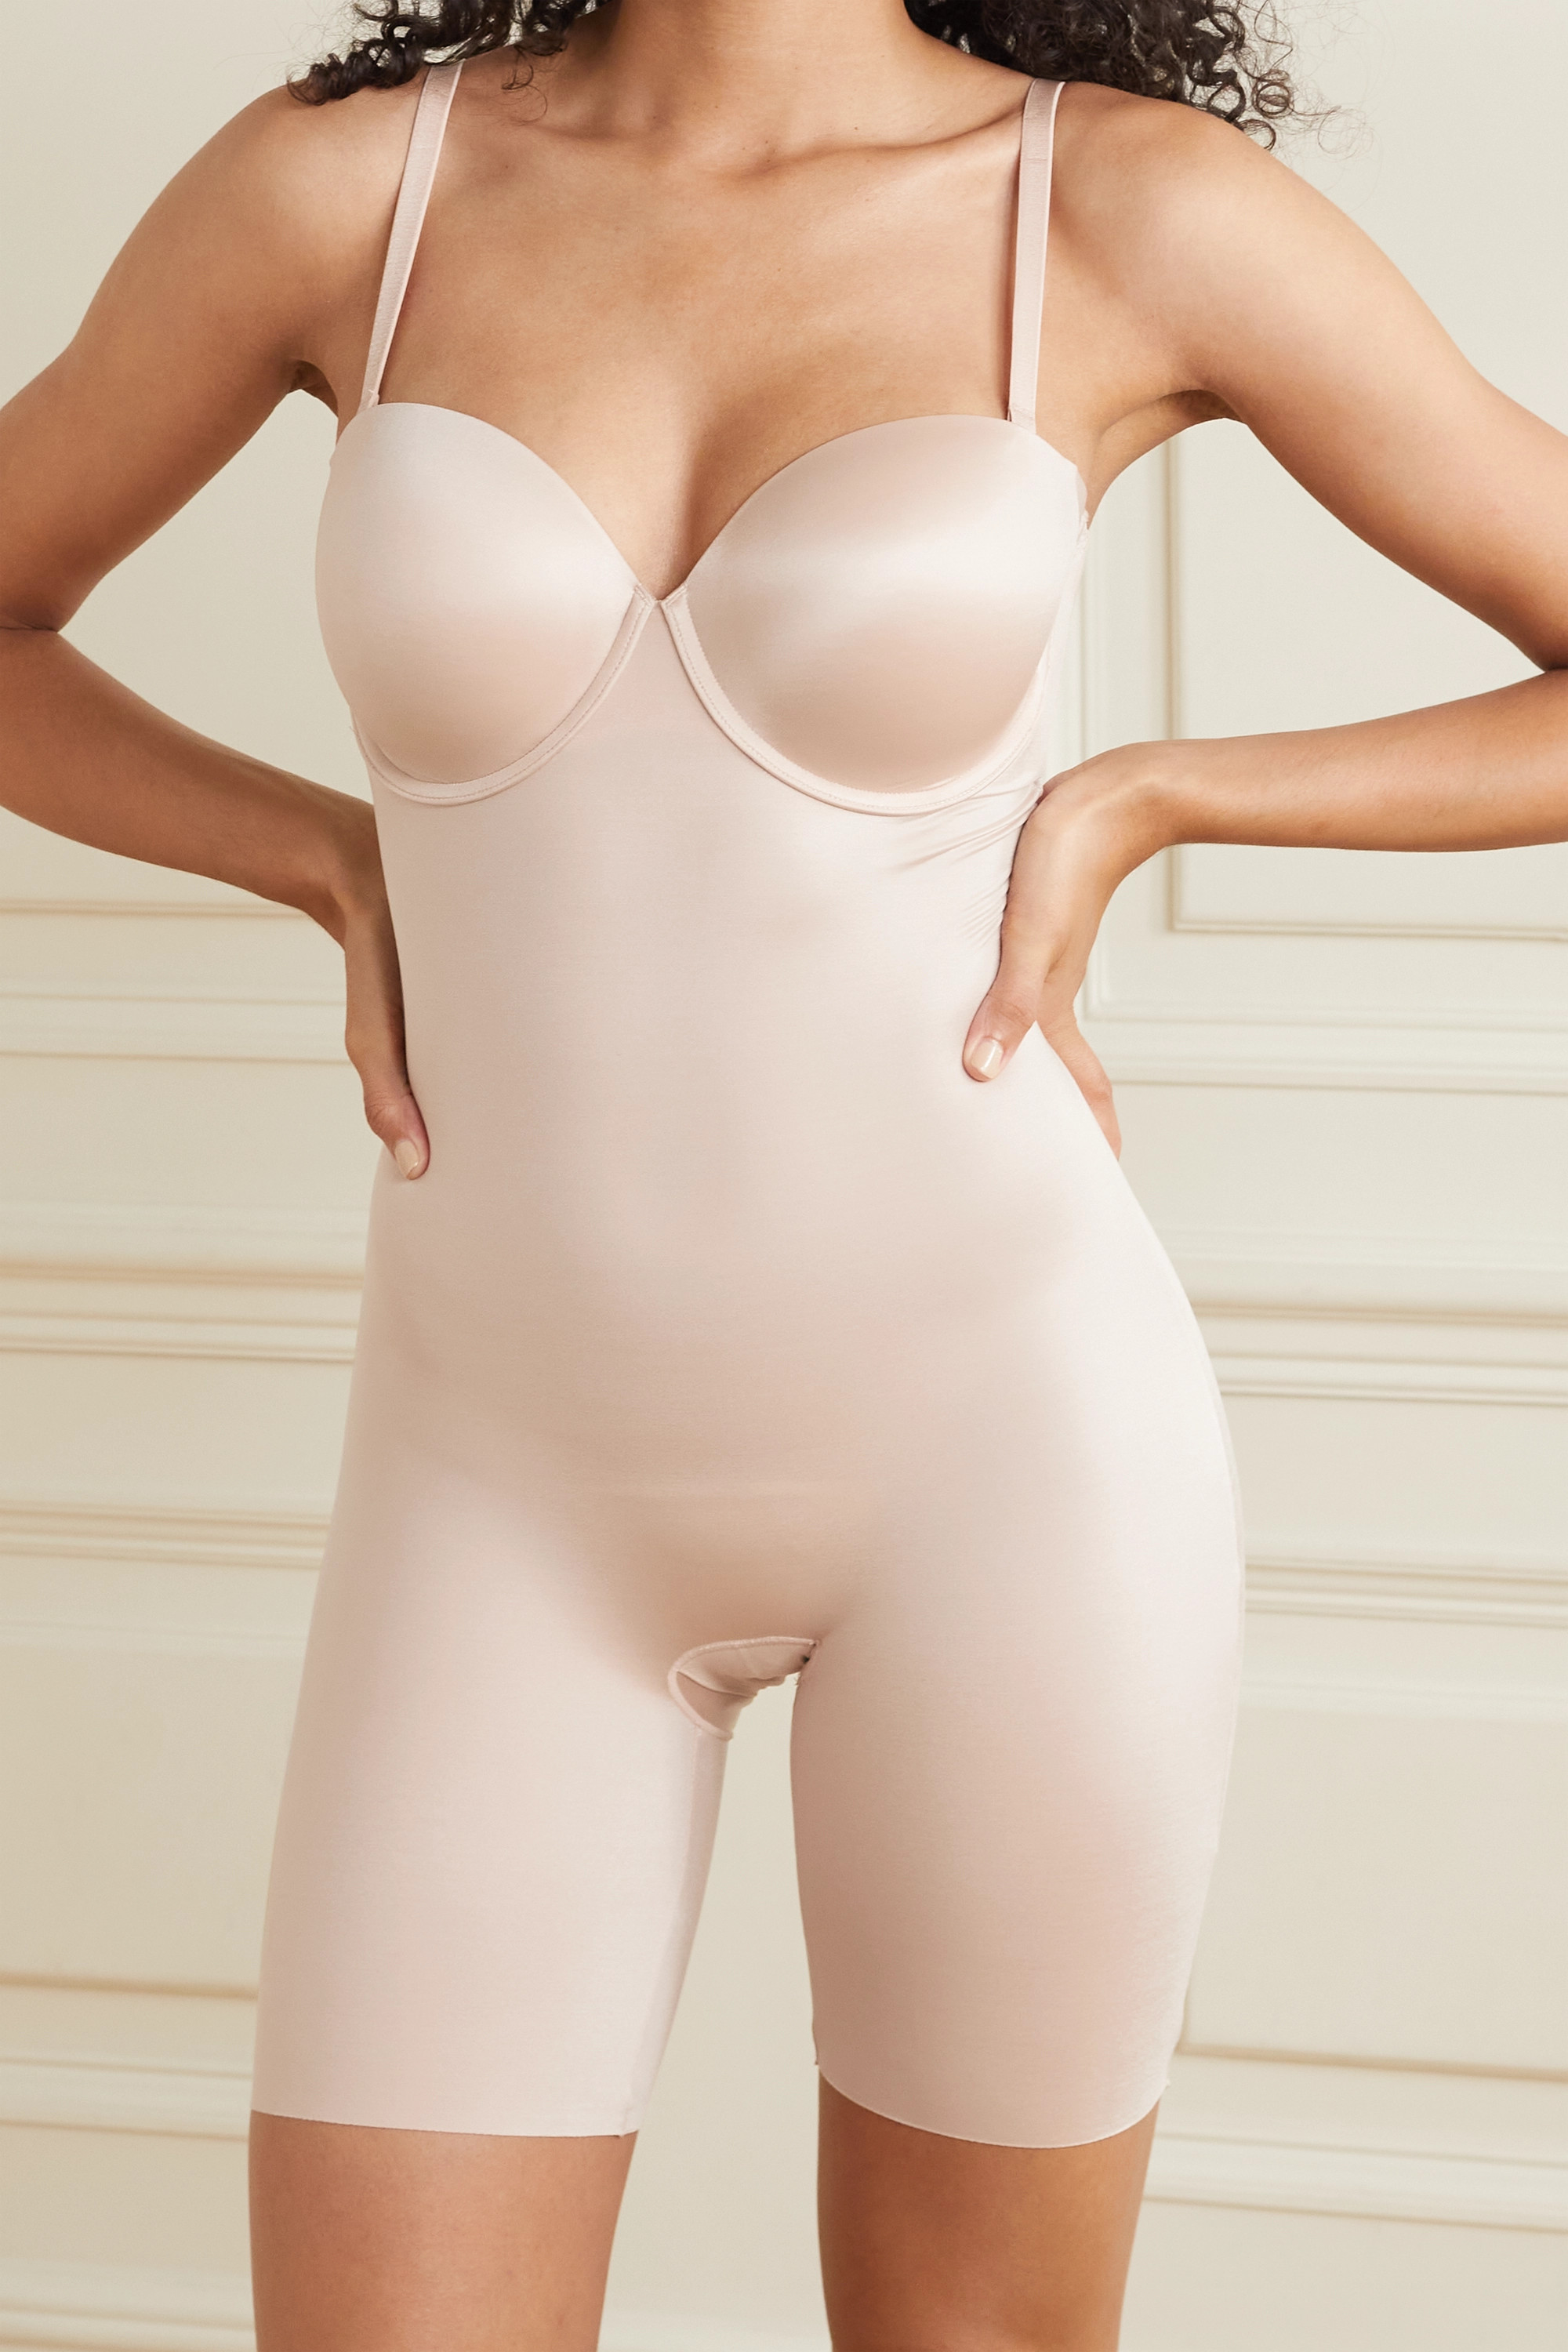 Spanx Suit Your Fancy convertible stretch bodysuit